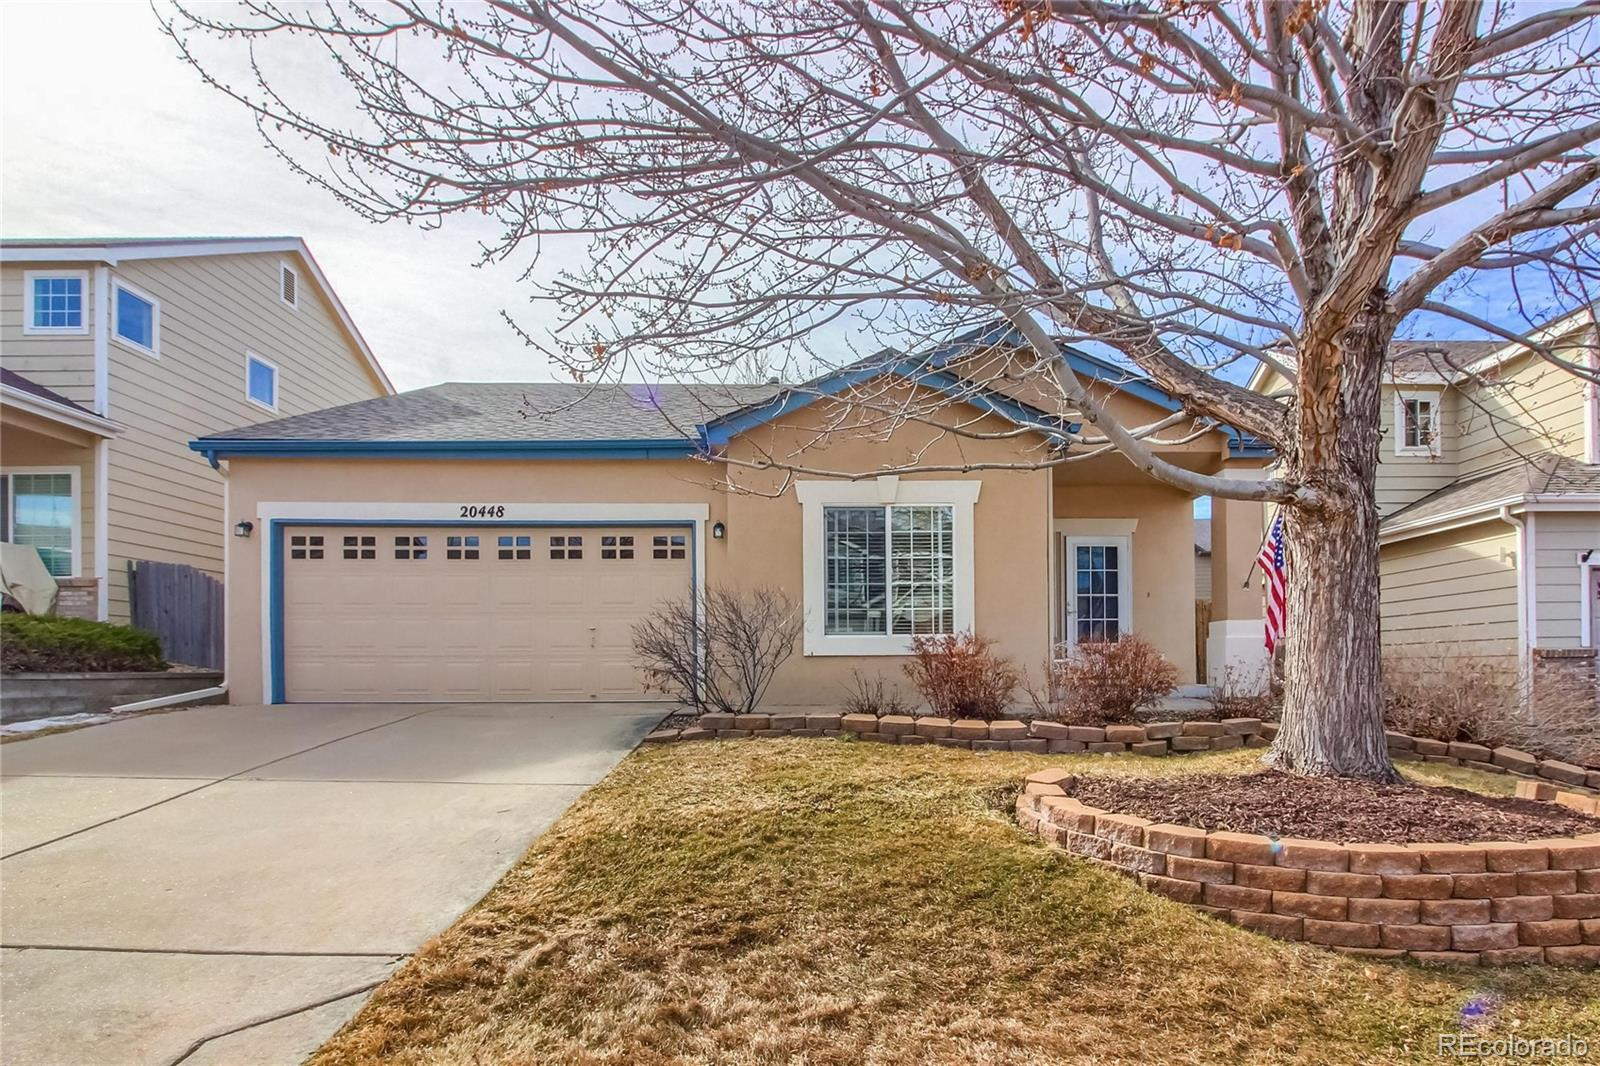 MLS# 4473839 - 1 - 20448 E Milan Place, Aurora, CO 80013